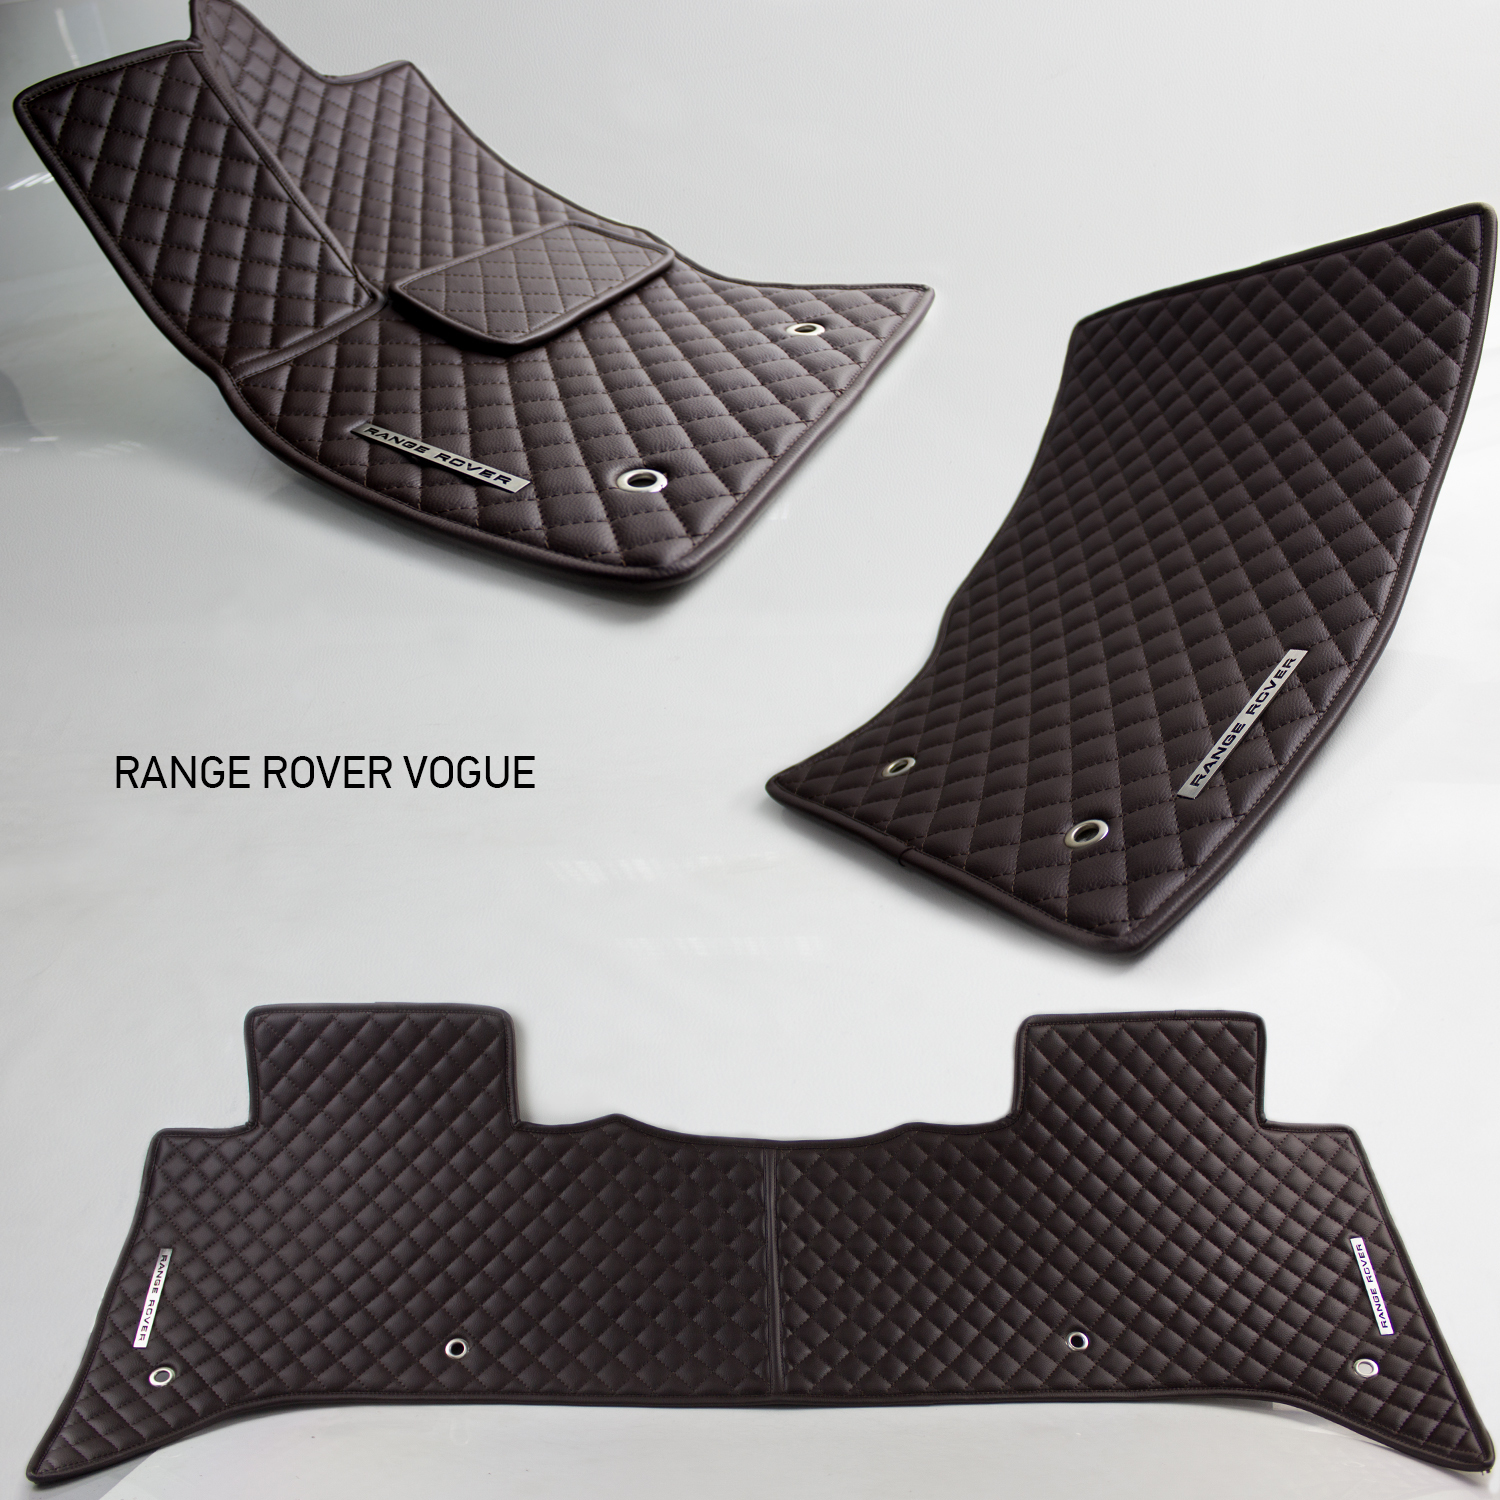 images-products-1-438-232989110-RANGE_ROVER_VOGUE.jpg